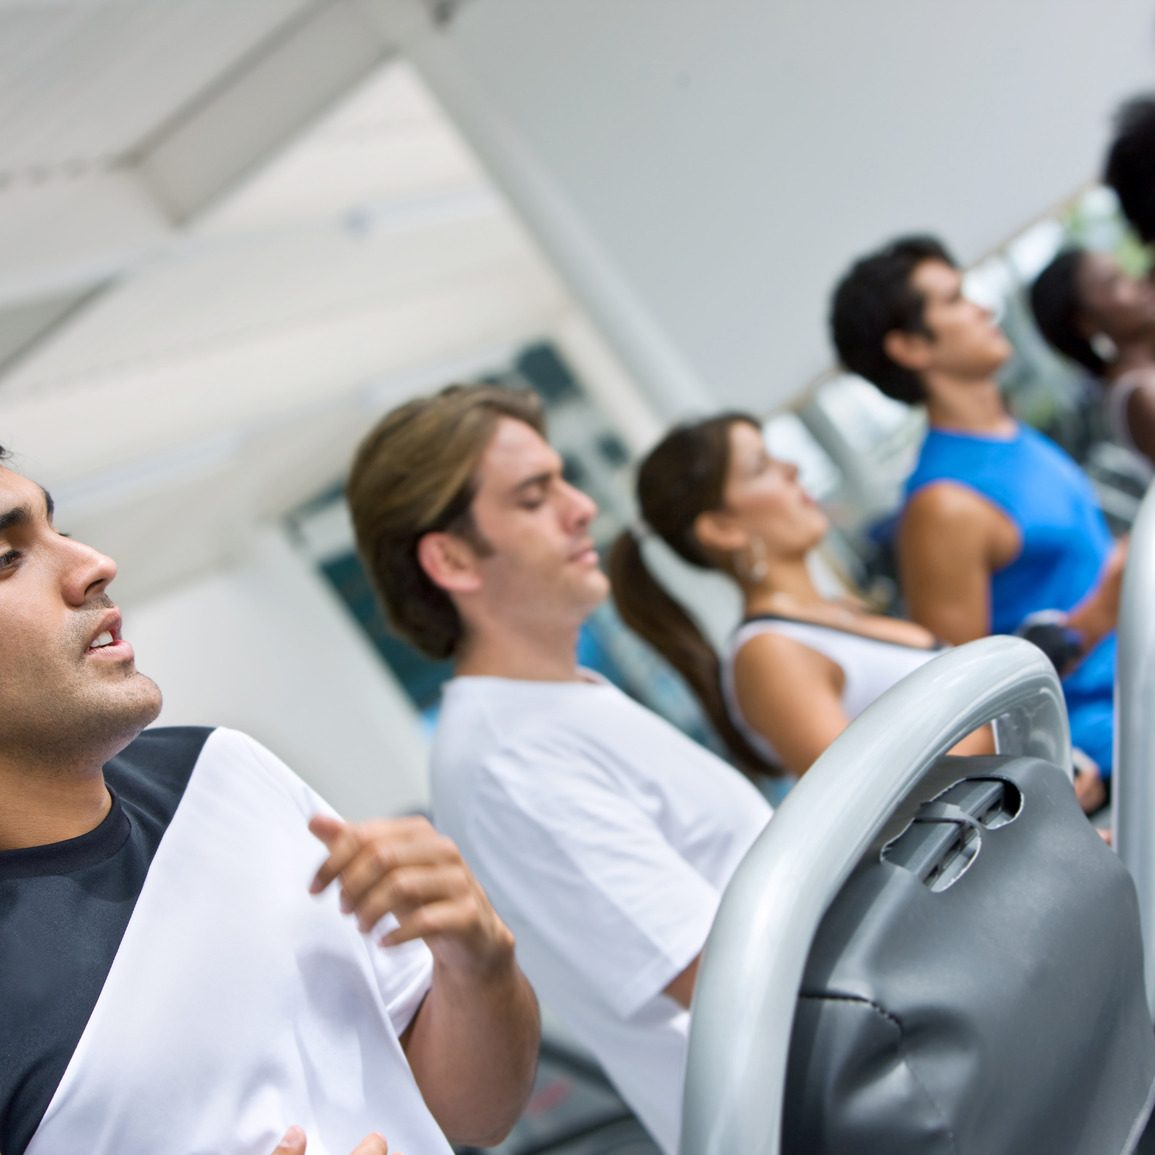 group of people at the gym doing exercise on the machines